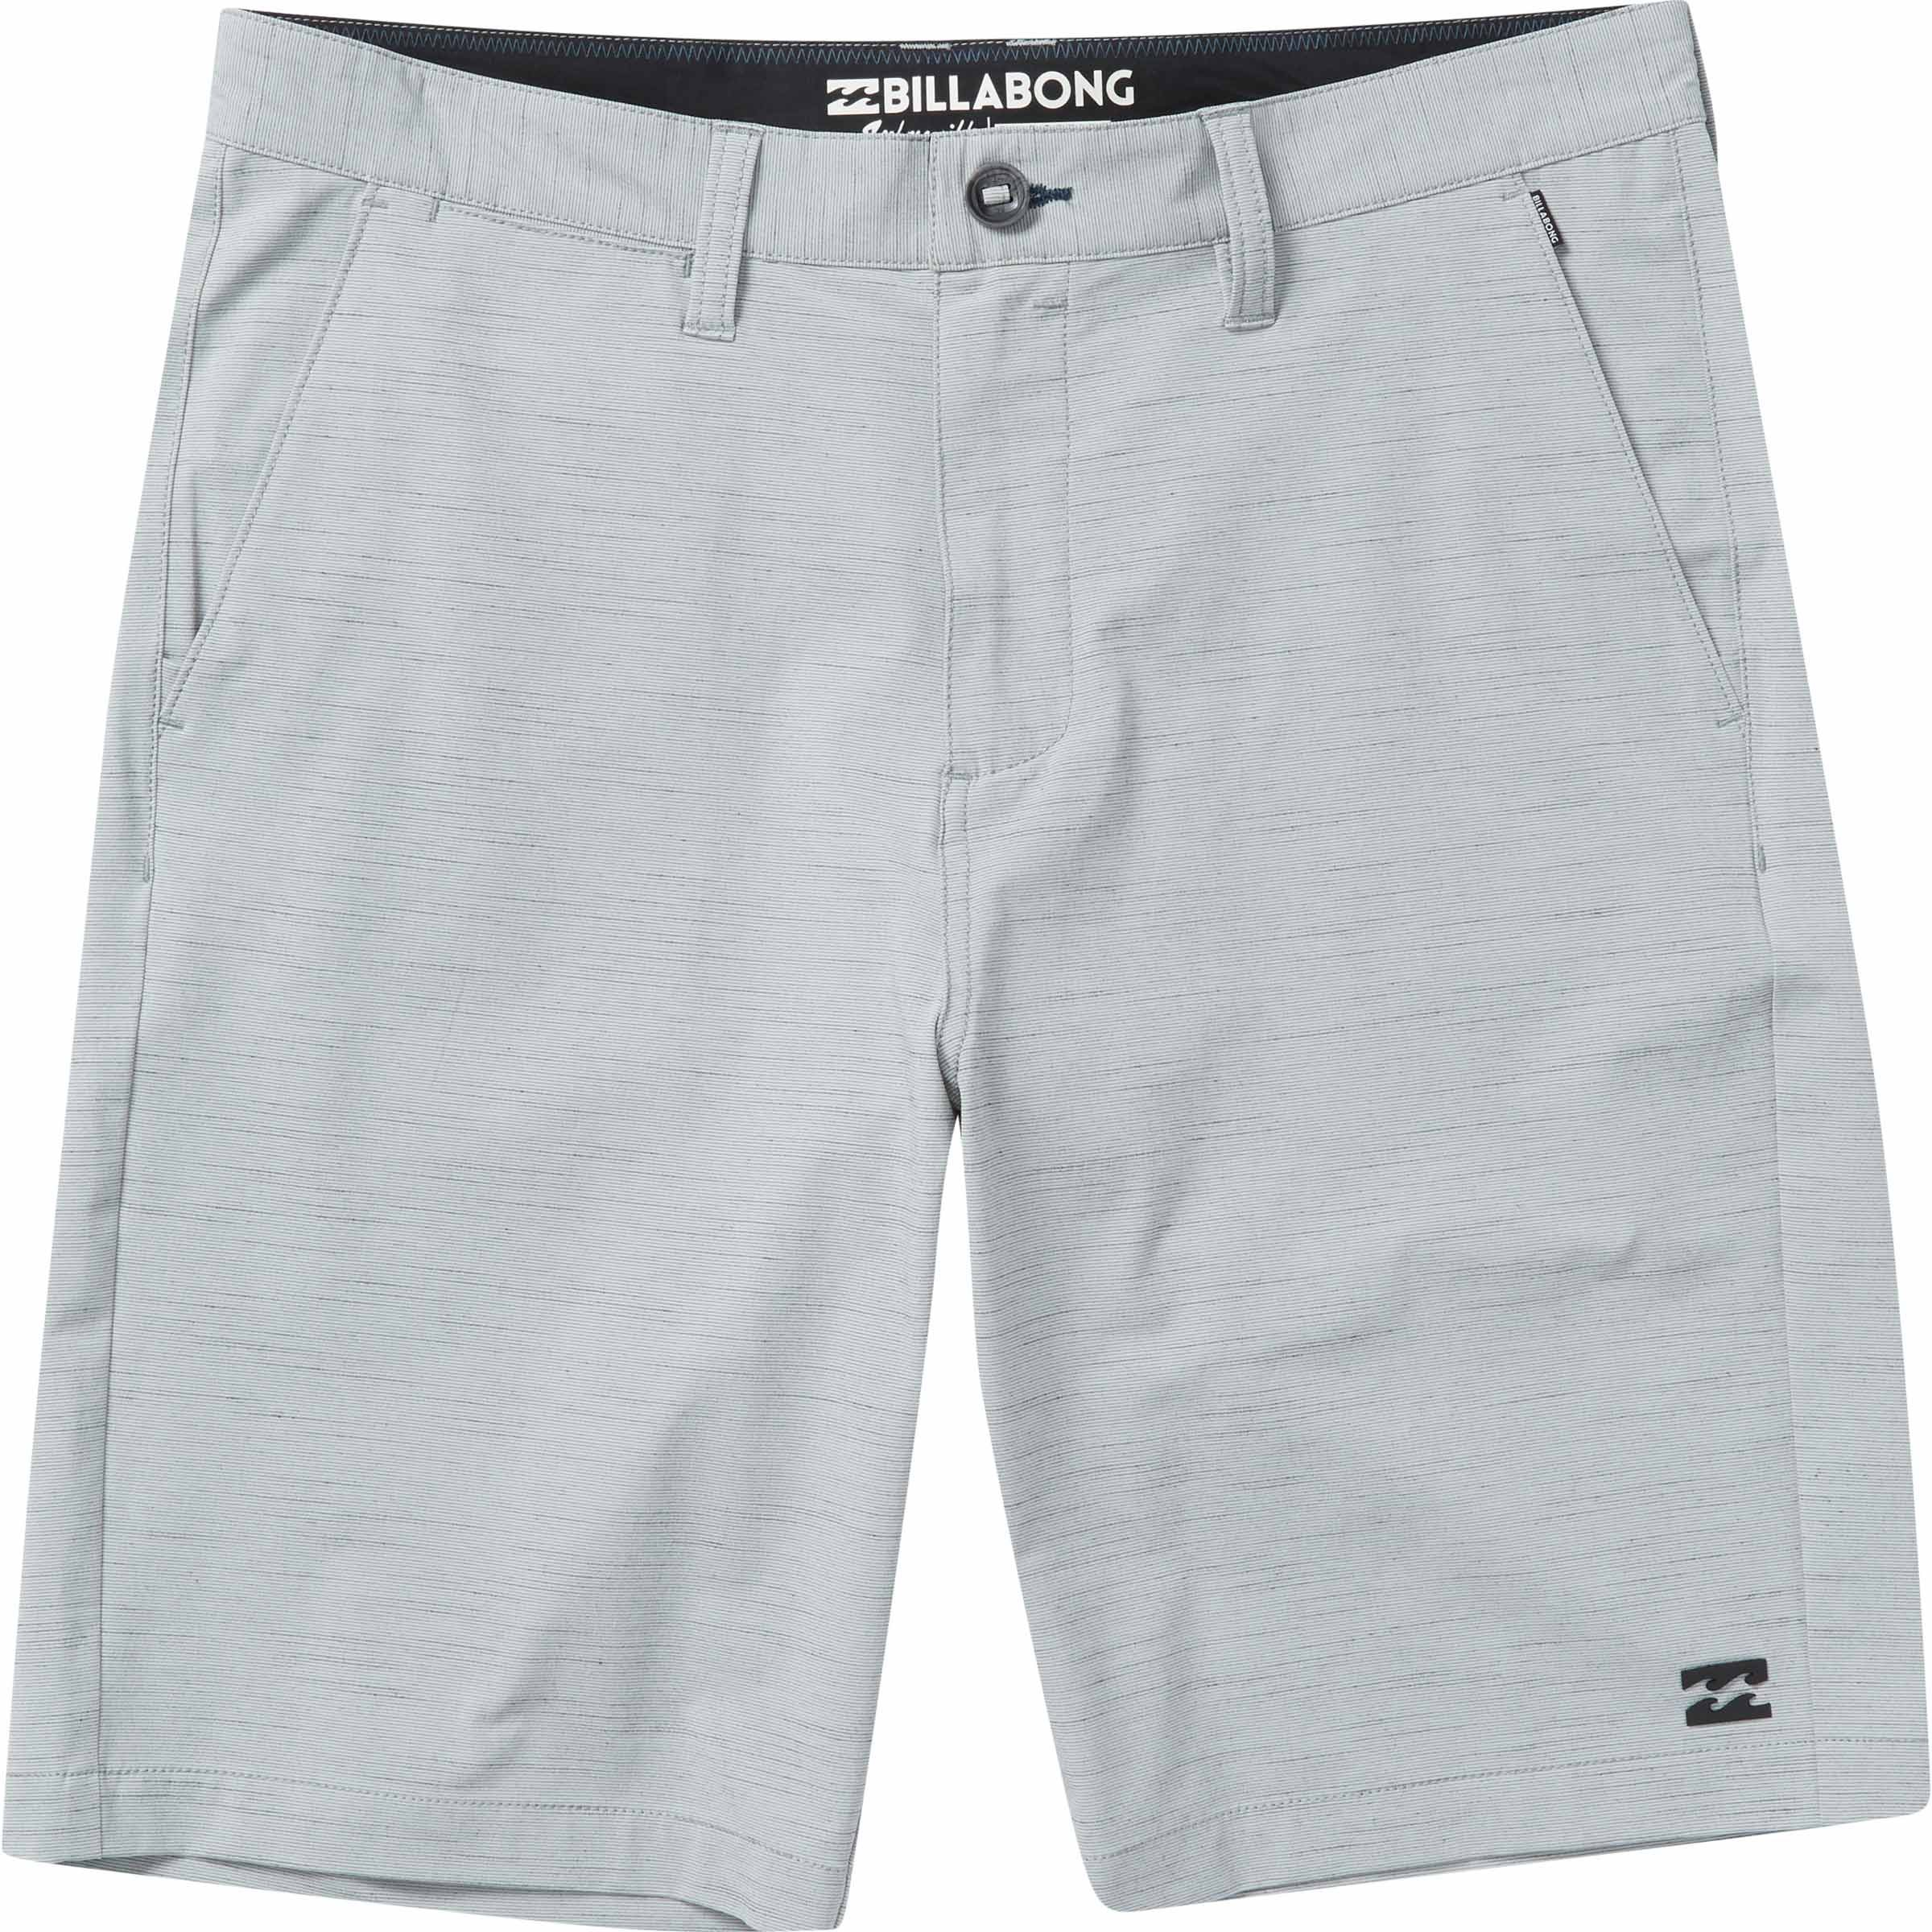 Billabong Men's Crossfire X Slub Submersibles Shorts Silver 33